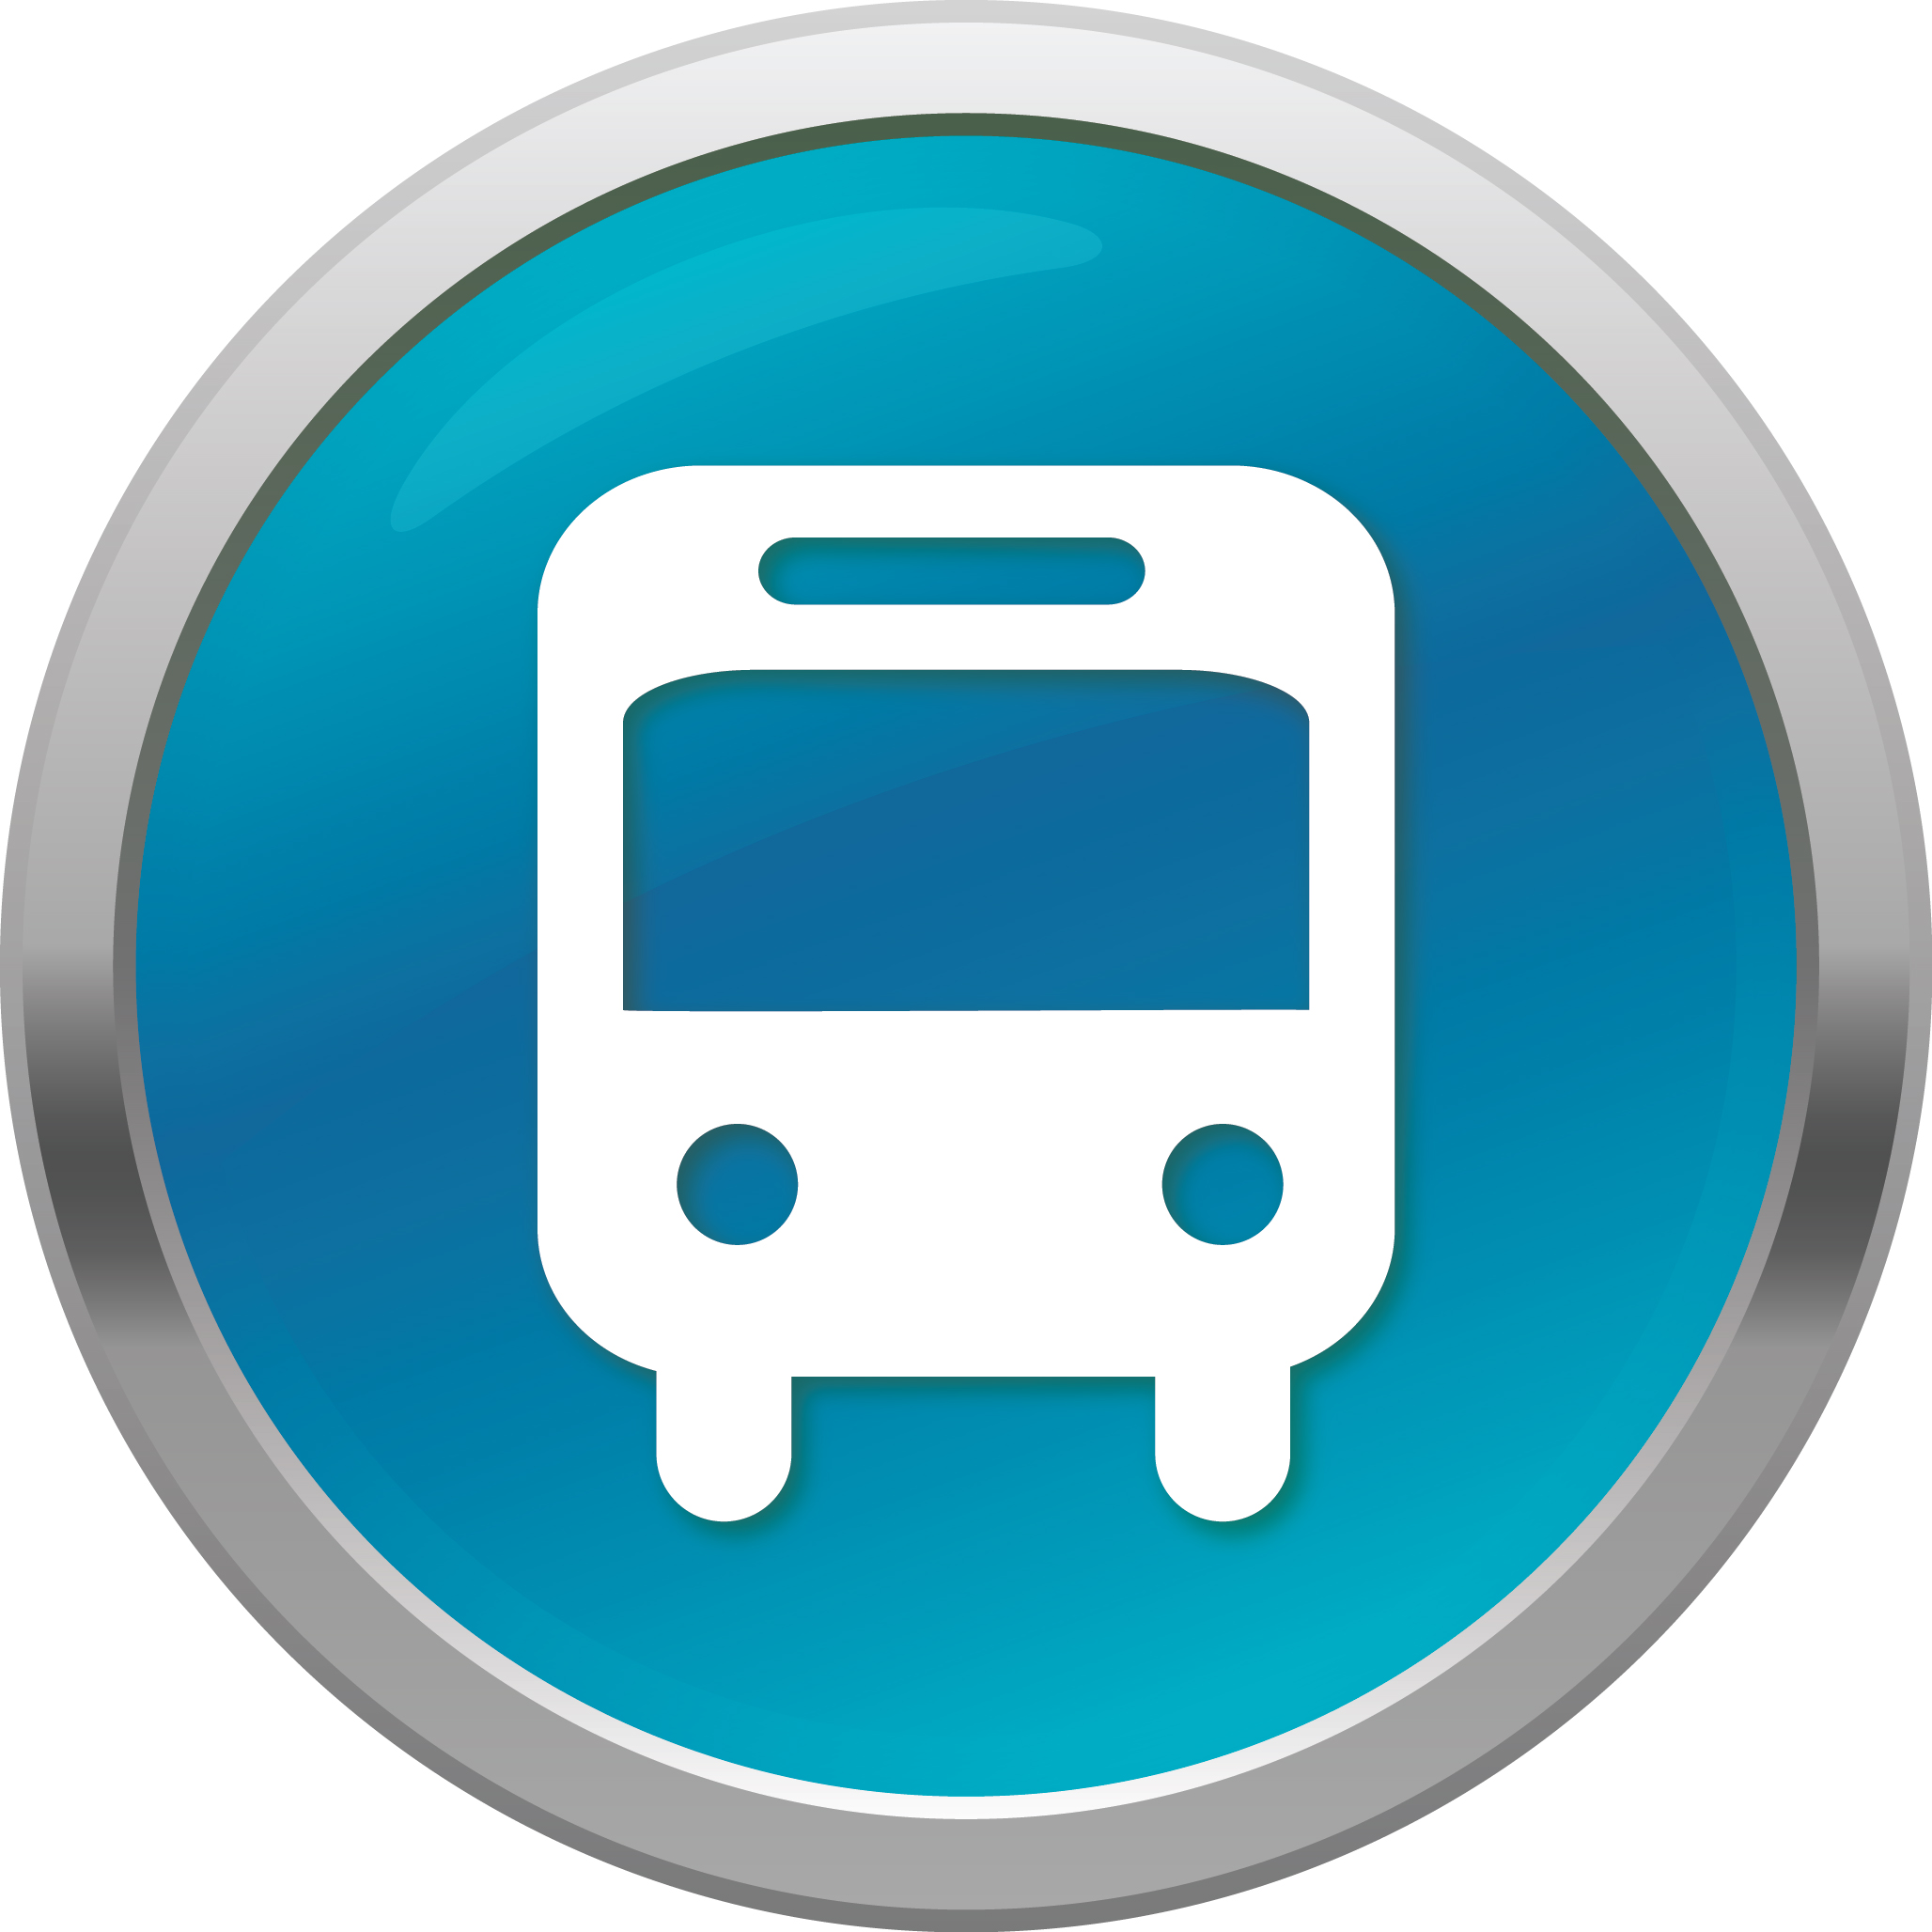 11 Shuttle Bus Icon Images